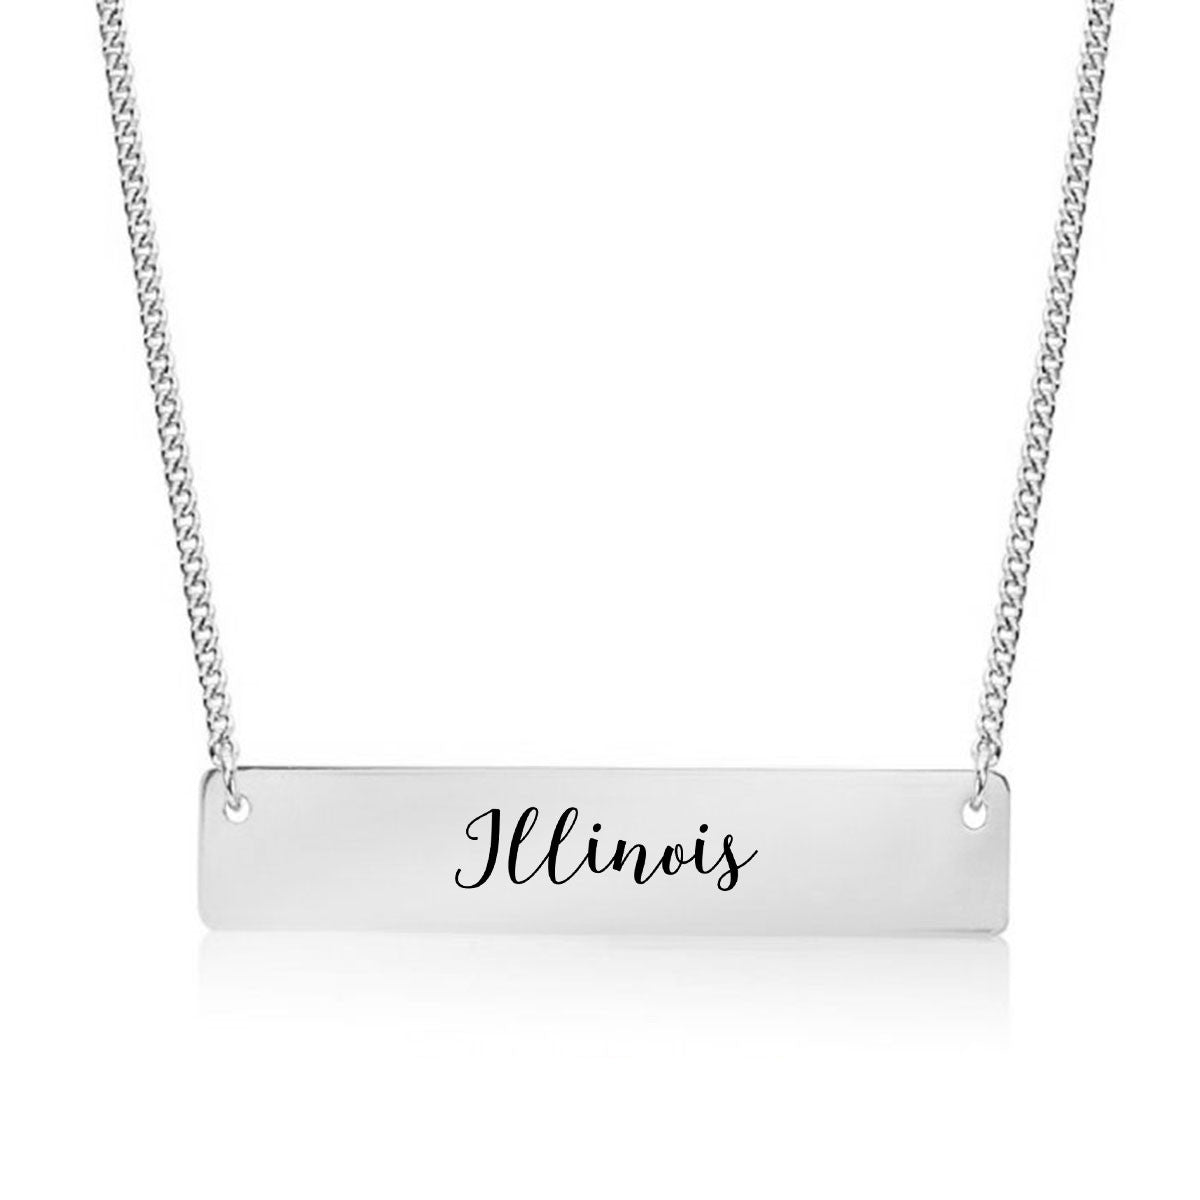 Illinois Gold / Silver Bar Necklace